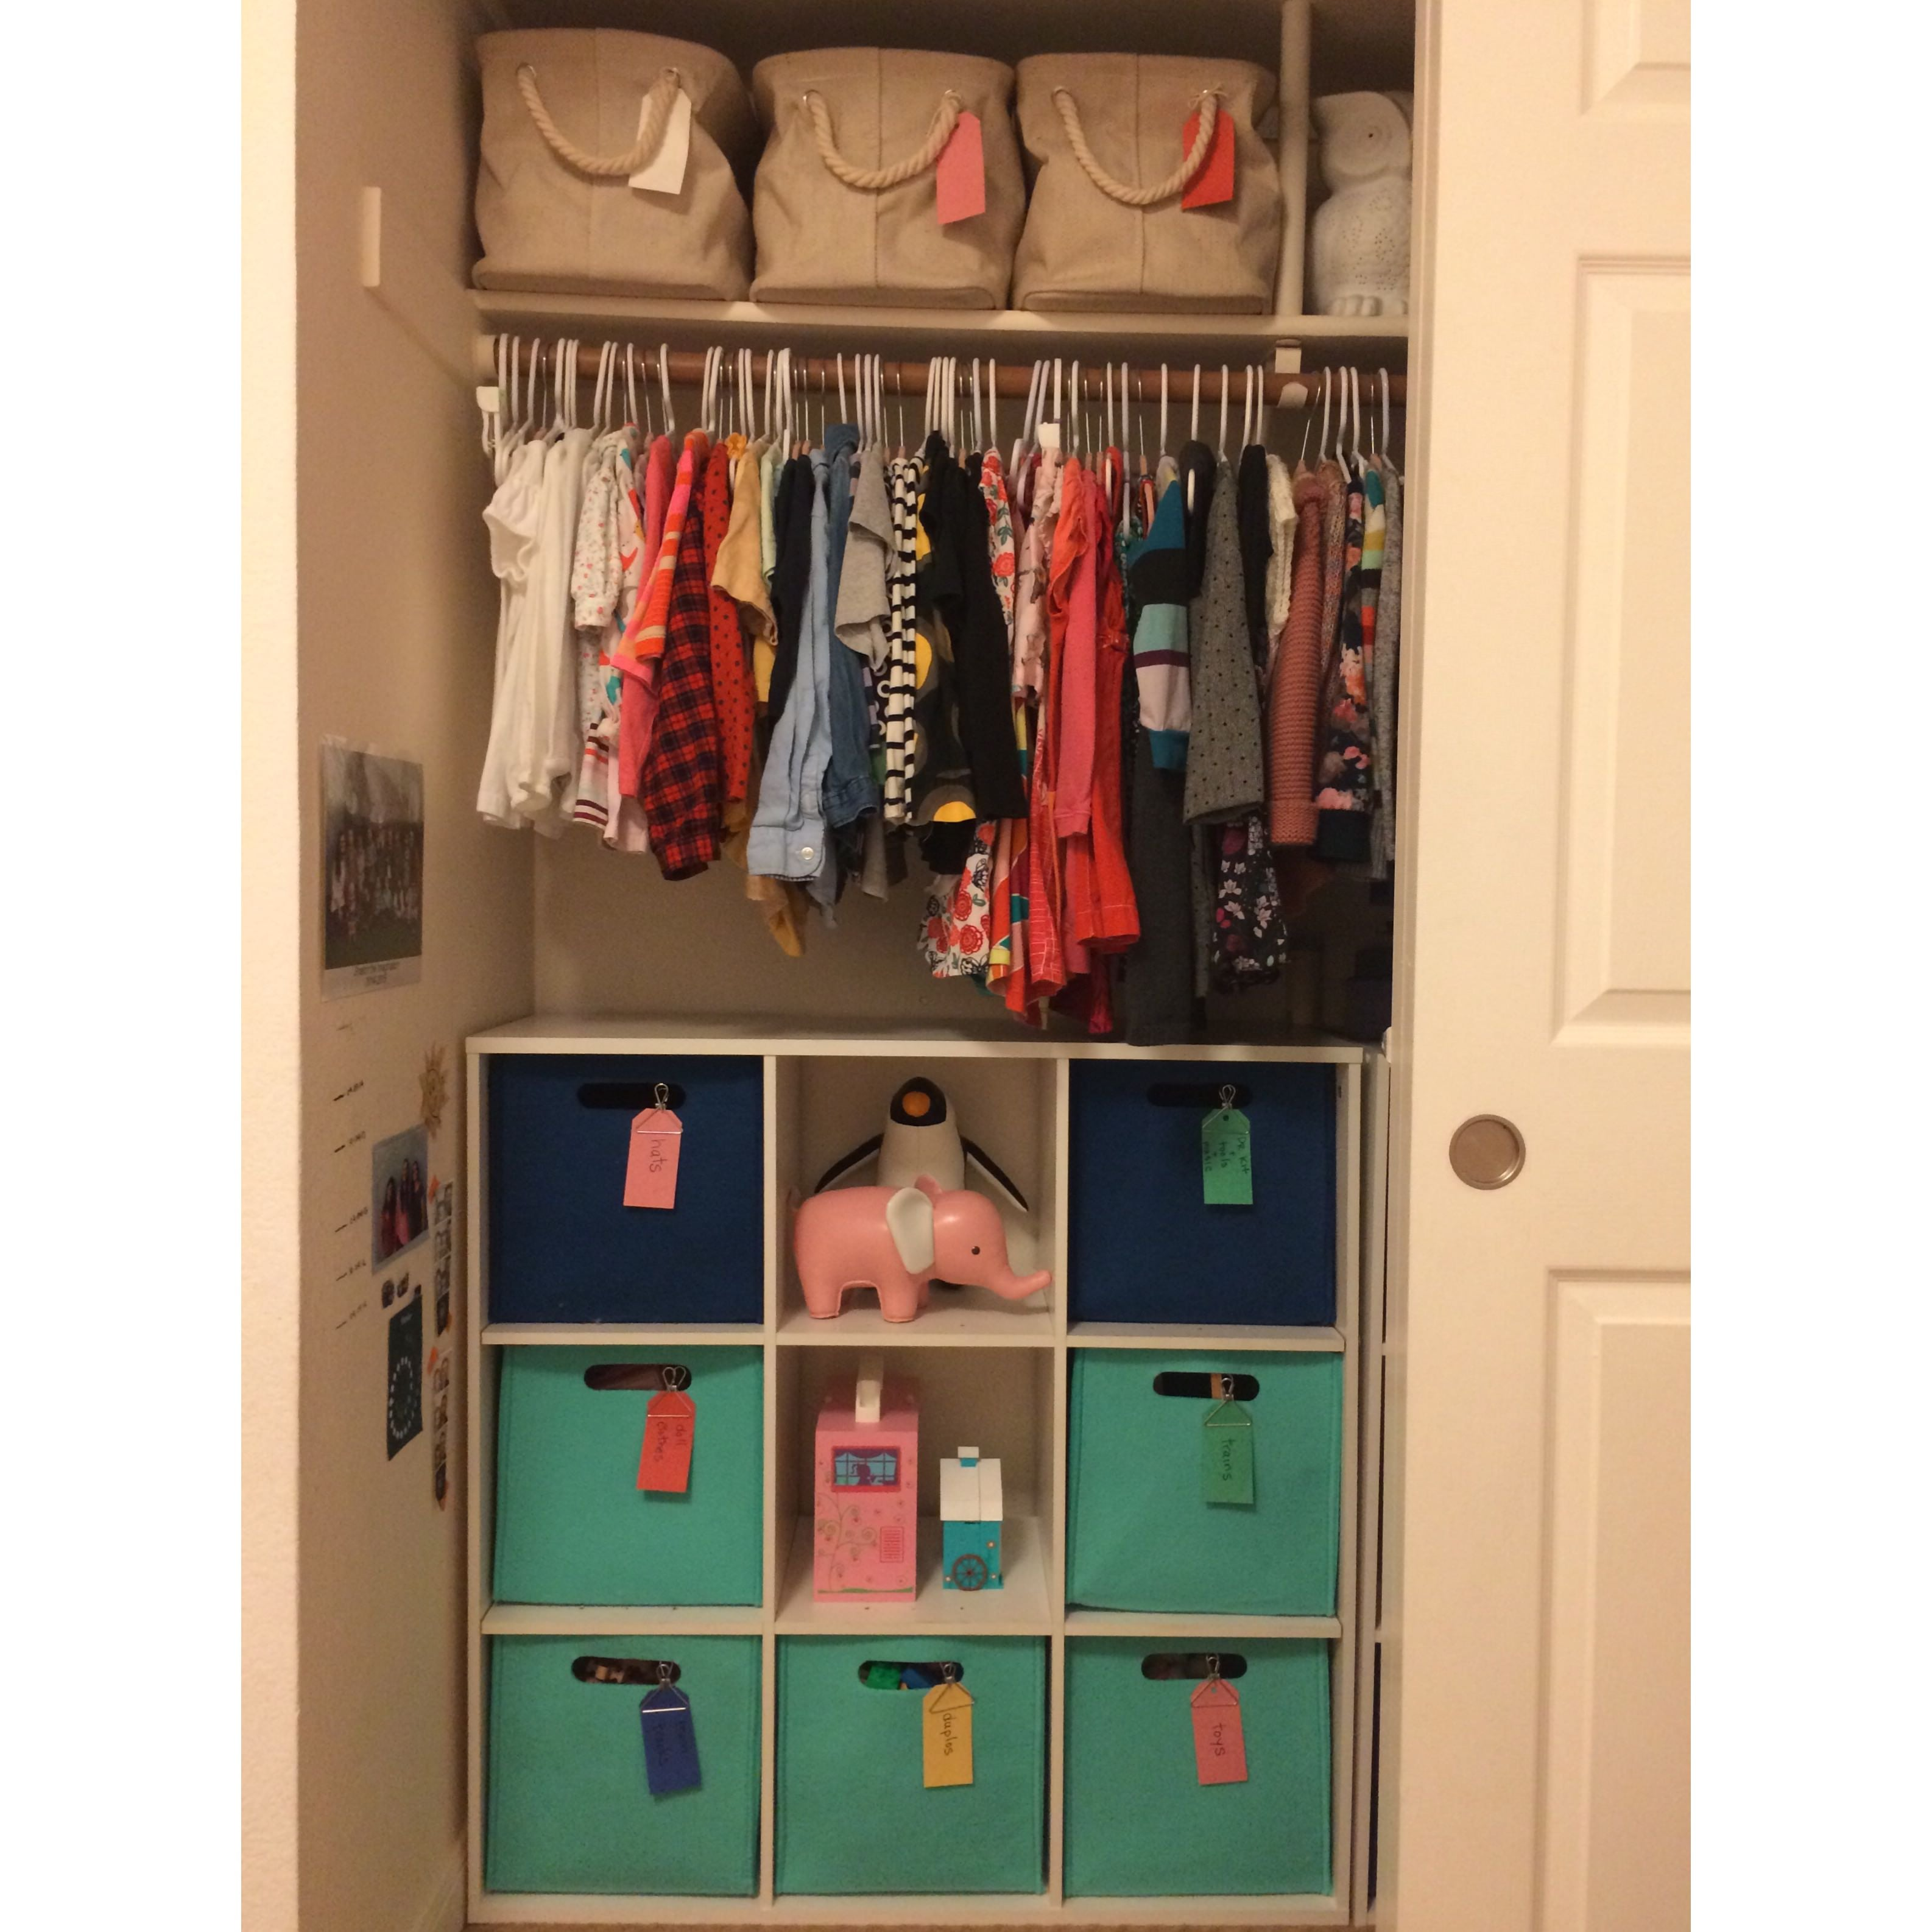 Lisa Ruff, Childrens closet, girls room, girls clothes, little girl, storage, labels, home, home organization, home organizer